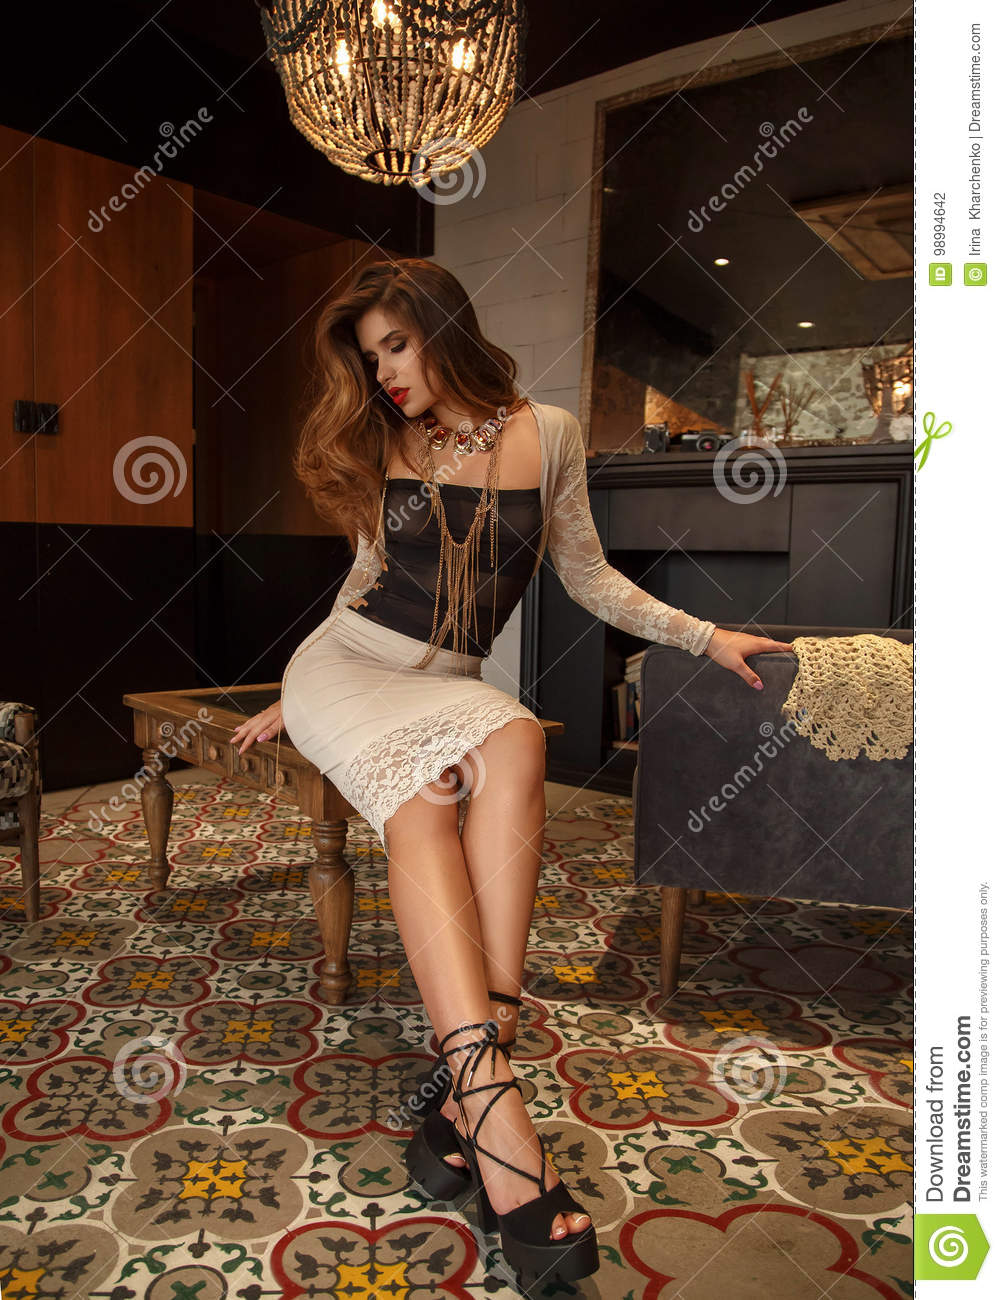 girl in a luxurious interior